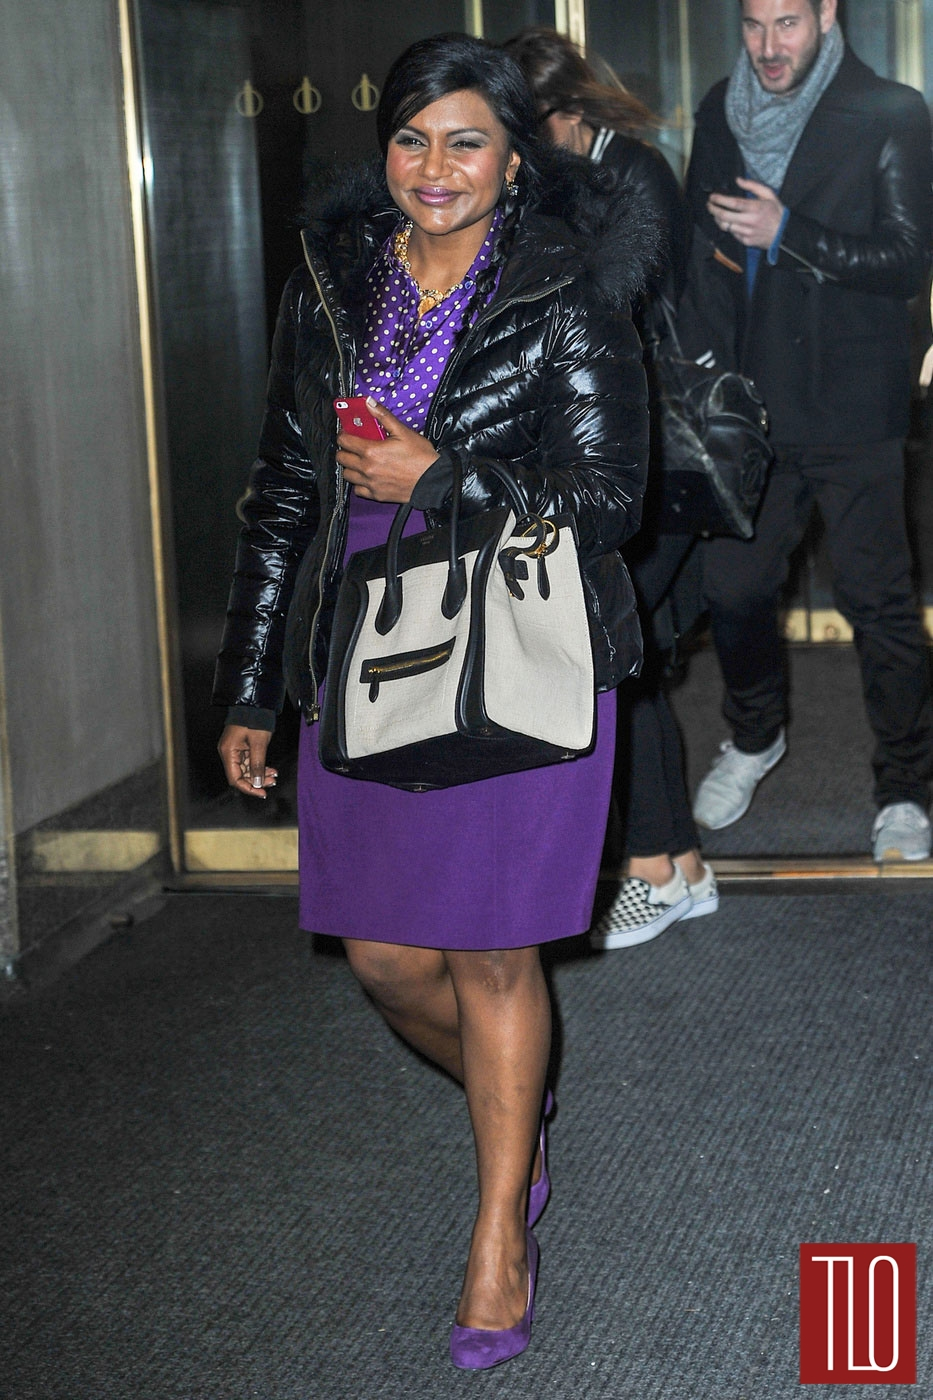 Mindy-Kaling-TODAY-Show-Tom-Lorenzo-Site-TLO (1)